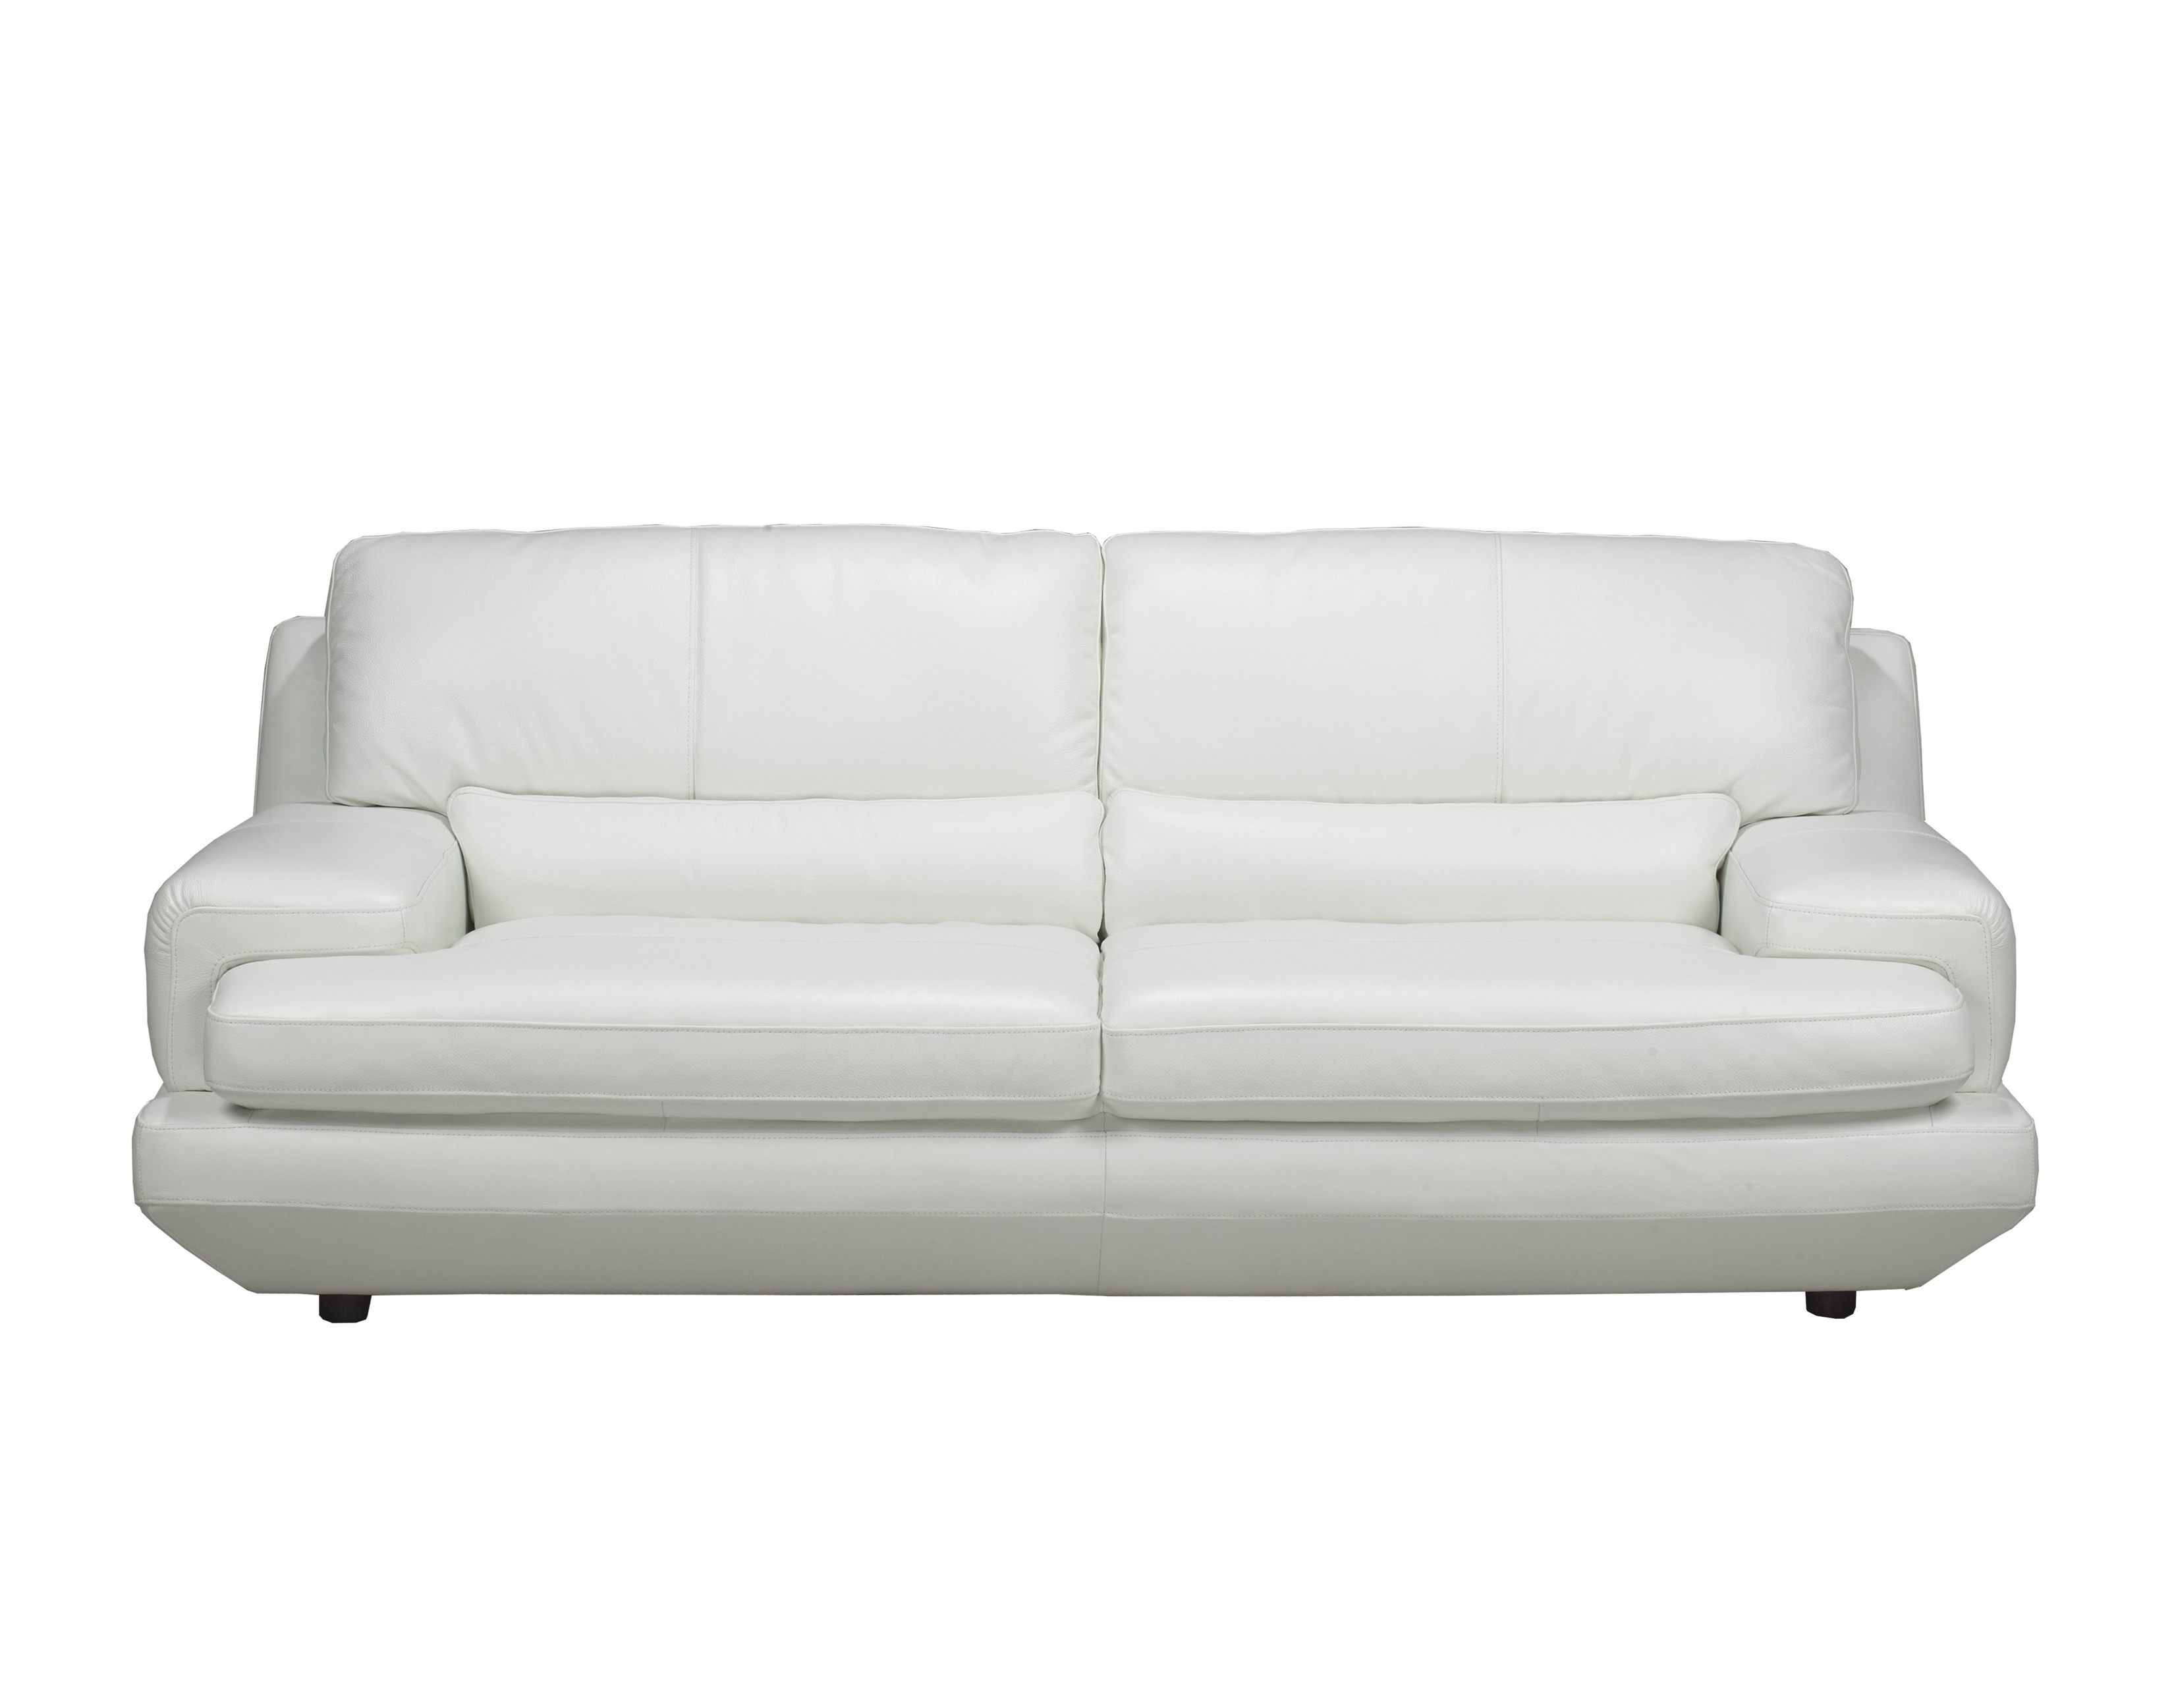 White Leather Sofas Inside Famous Decorating Black And White Leather Couch Pure Leather Sofa Set (View 12 of 15)